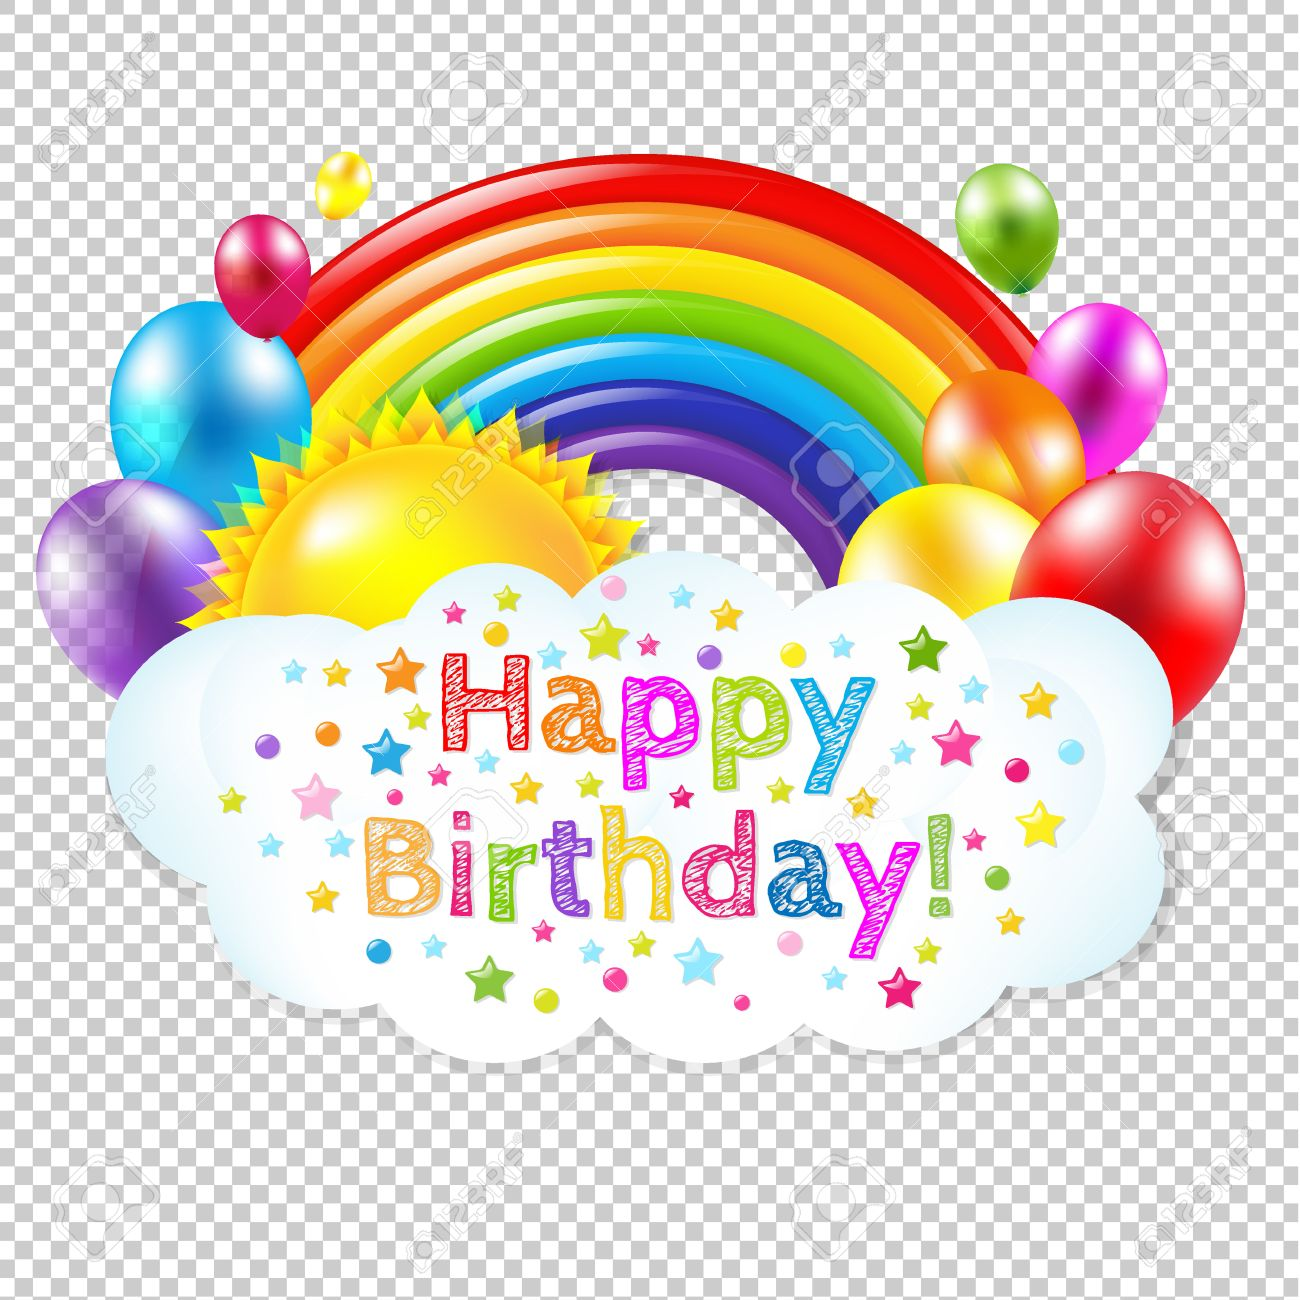 birthday banner background images ; 57247690-happy-birthday-banner-banner-with-rainbow-isolated-isolated-on-transparent-background-with-gradient-